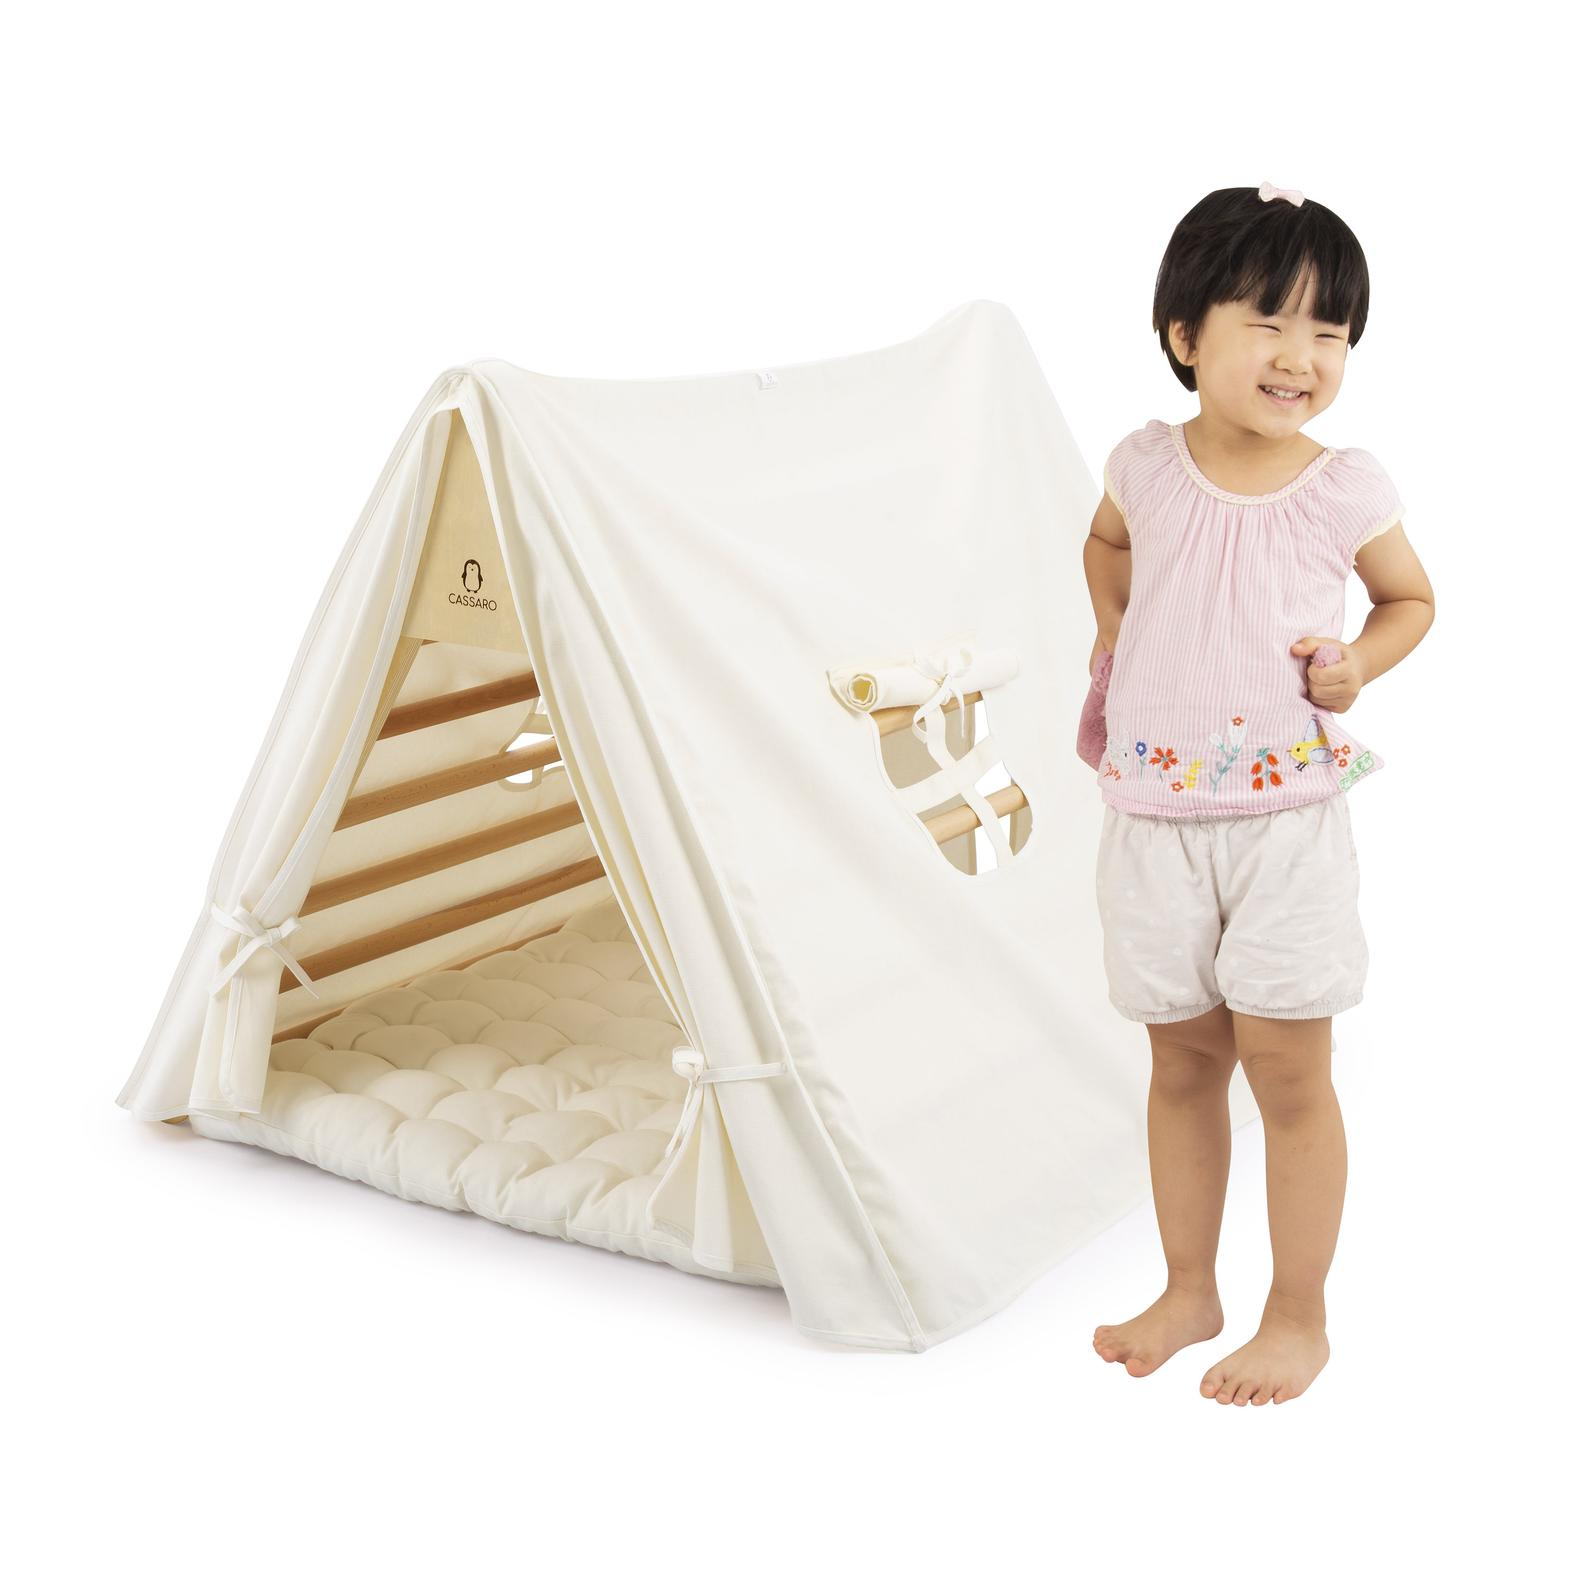 10 best baby and toddler holiday gifts from small businesses: Handmade climbing triangle with play tent attachment | Small Business Holiday Gift Guide 2020